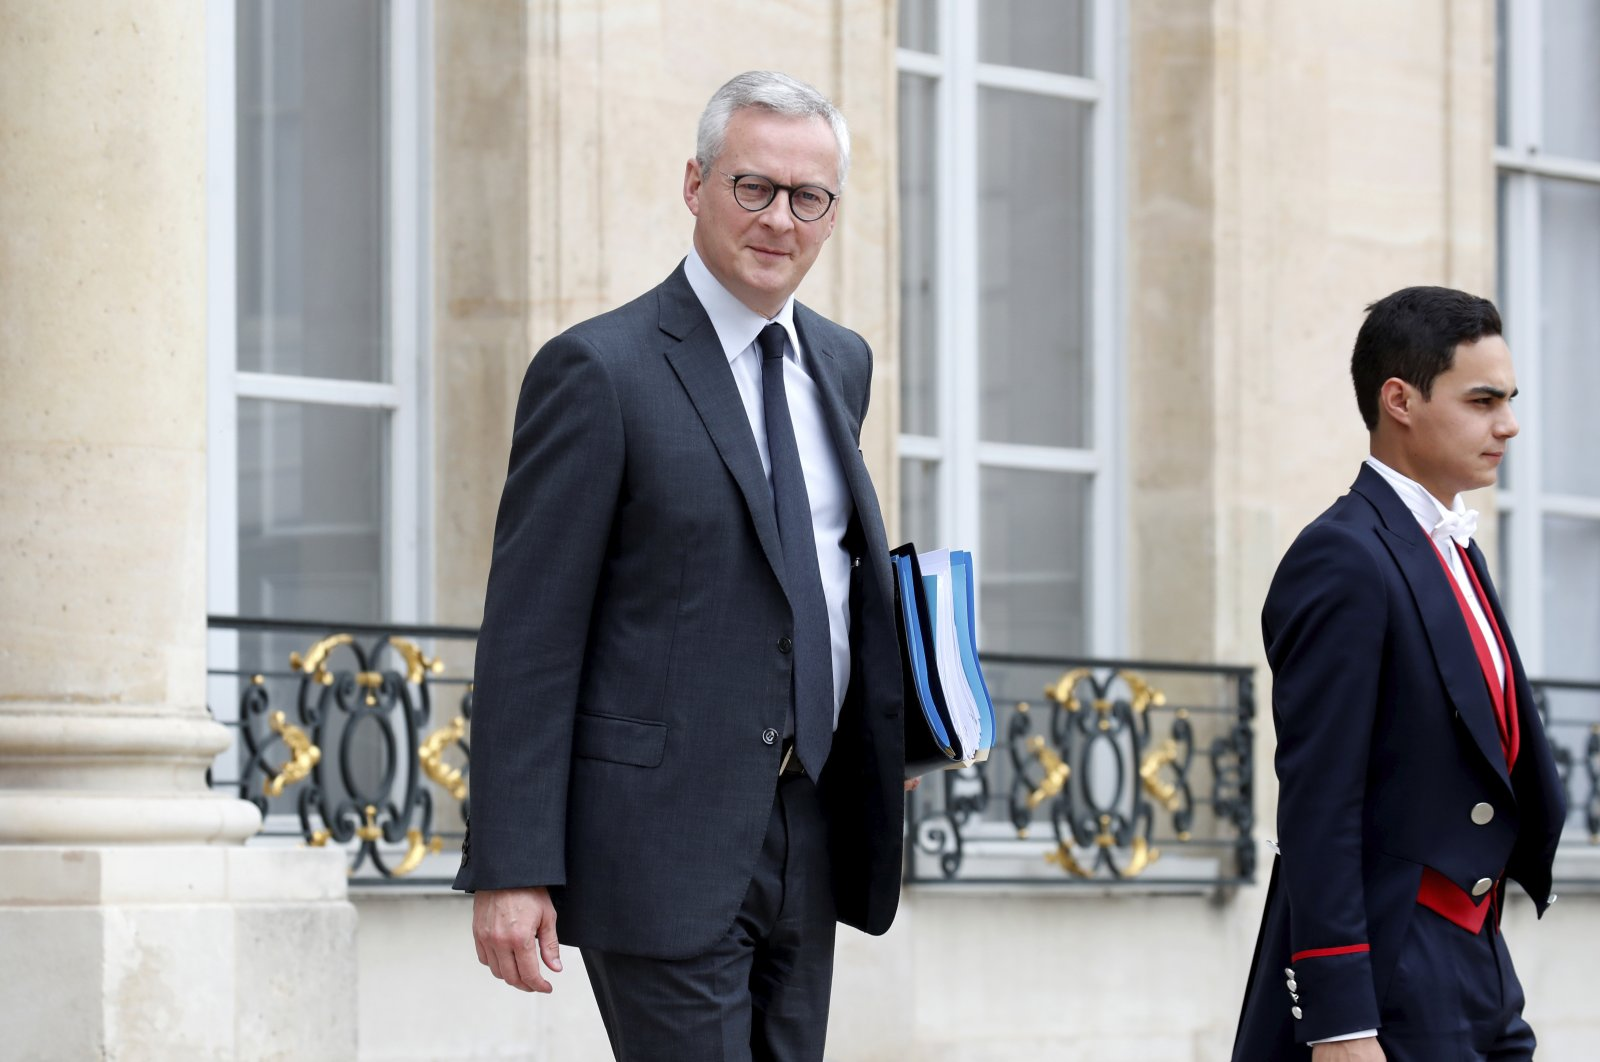 French Finance Minister Bruno Le Maire leaves following the weekly cabinet meeting at the Elysee Palace in Paris, France, June 17, 2020. (AP Photo)